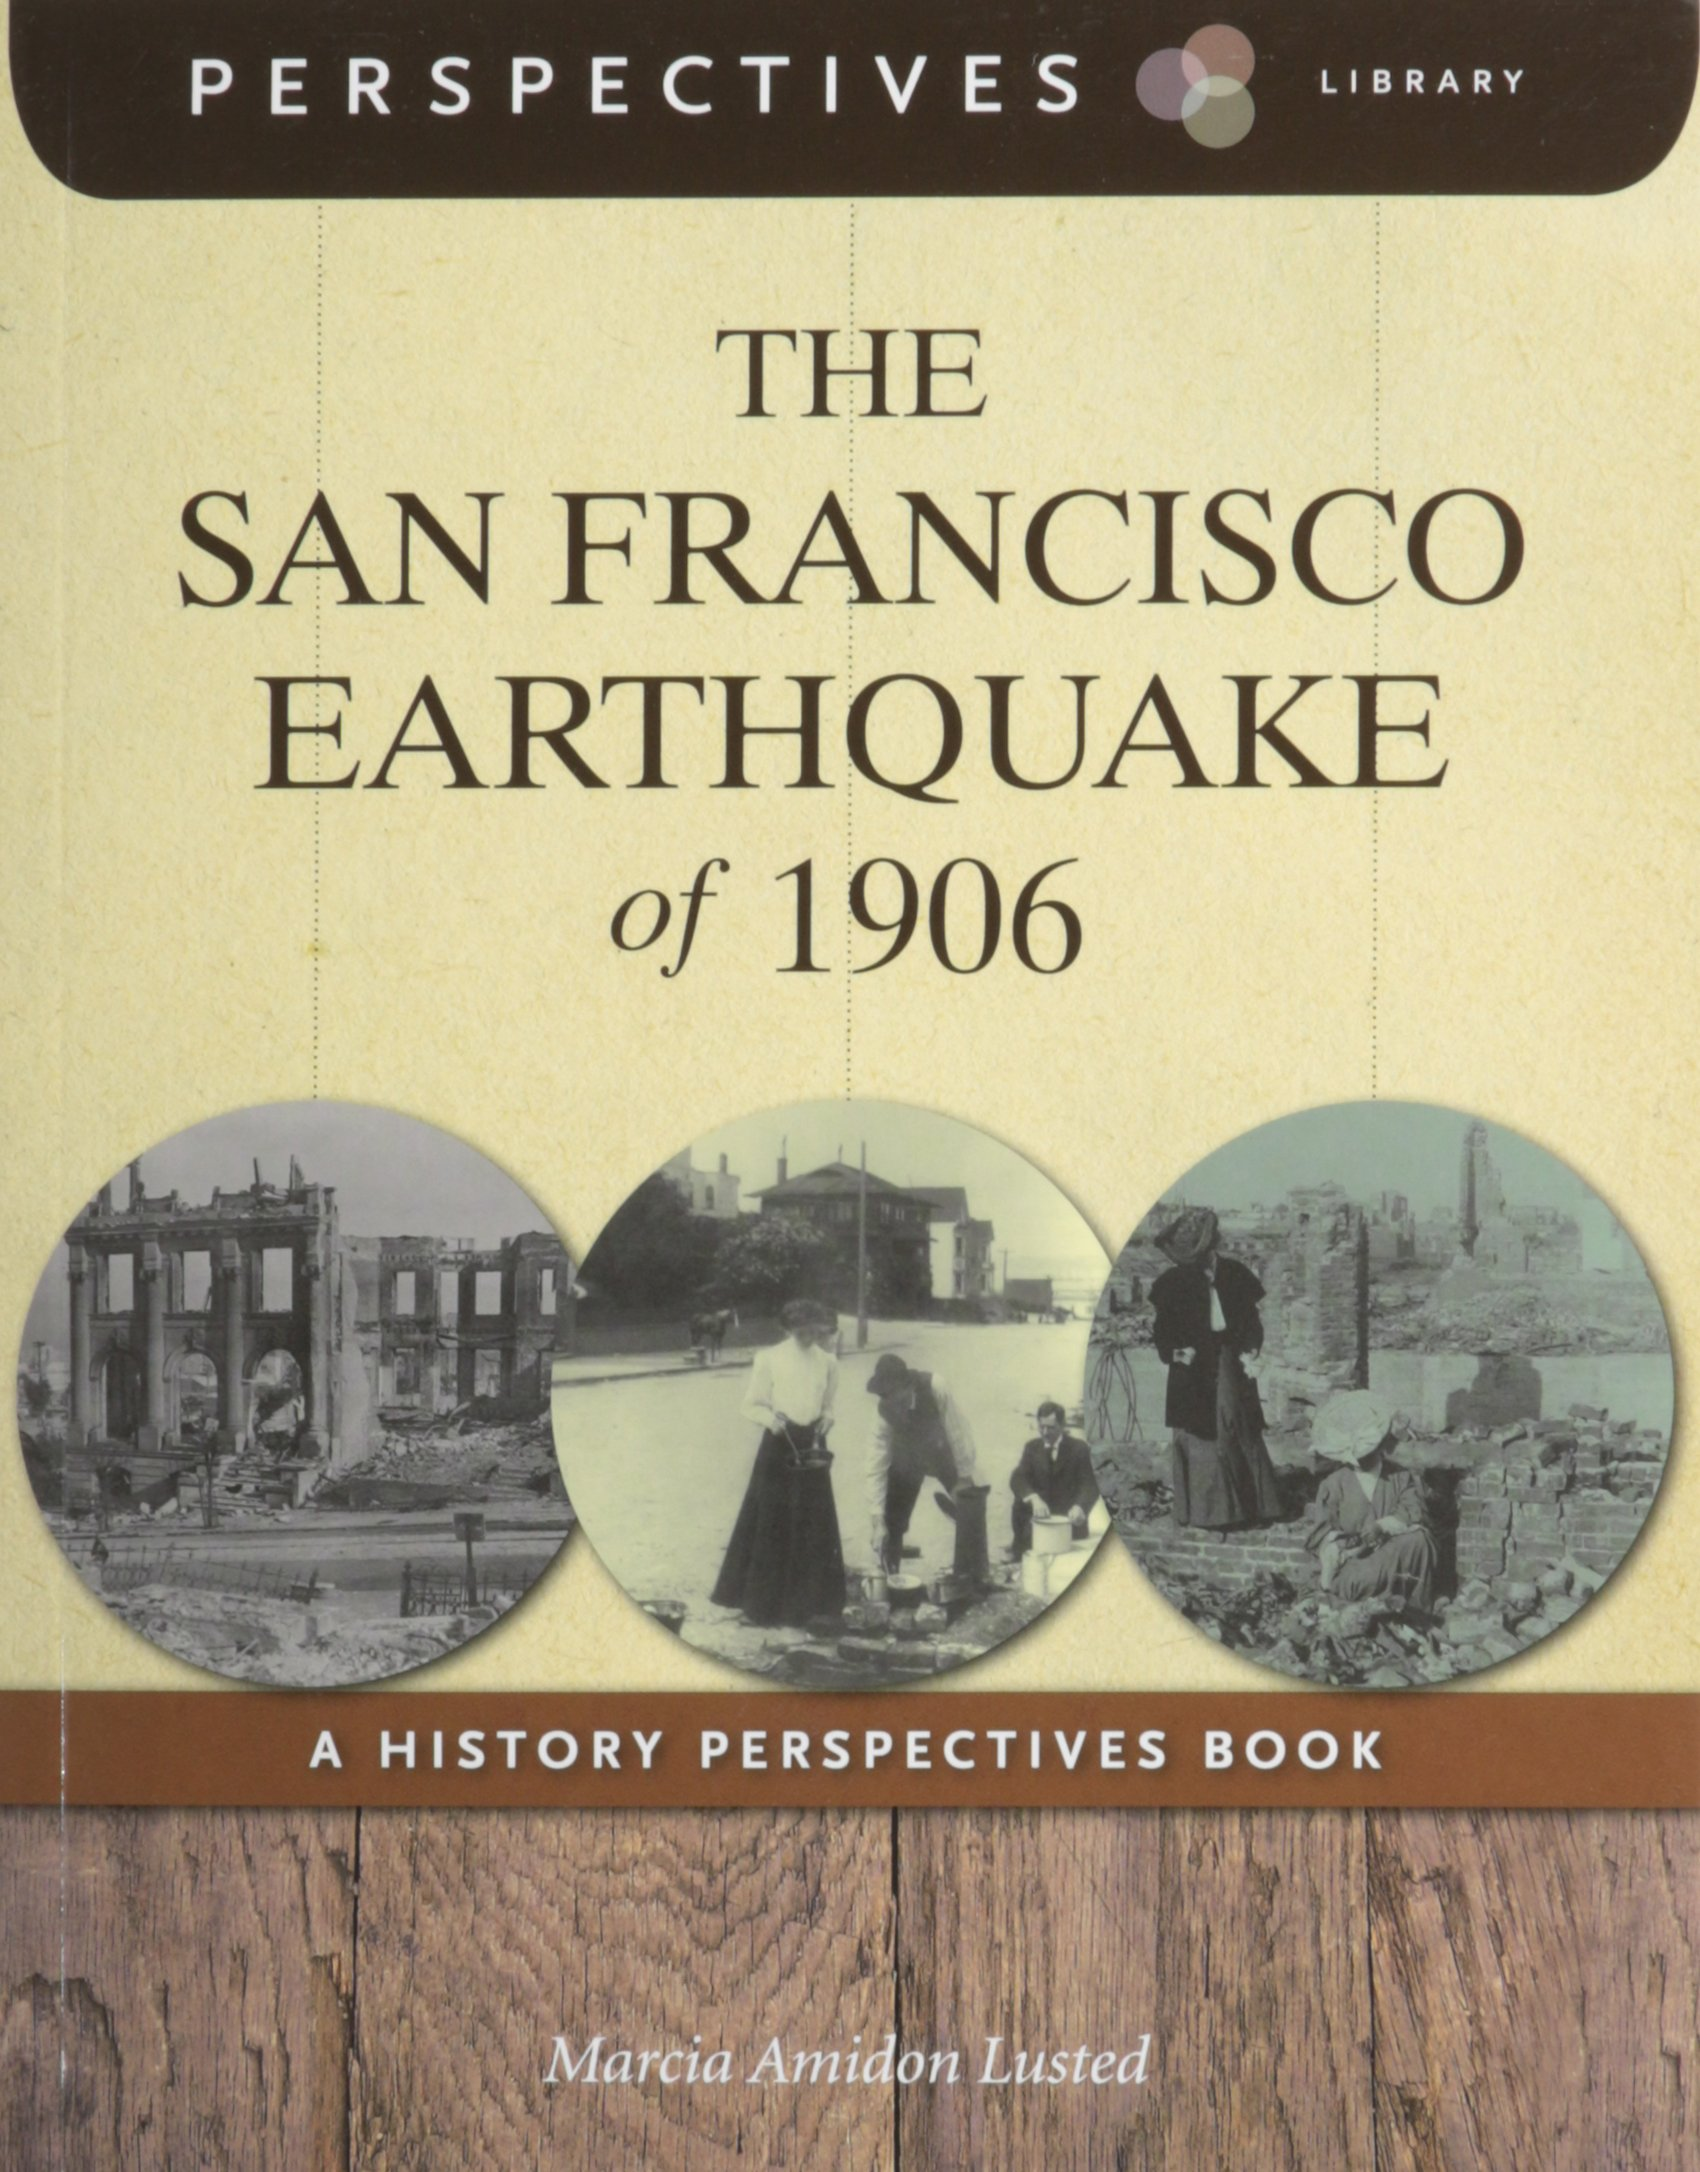 the-san-francisco-earthquake-of-1906-a-history-perspectives-book-perspectives-library